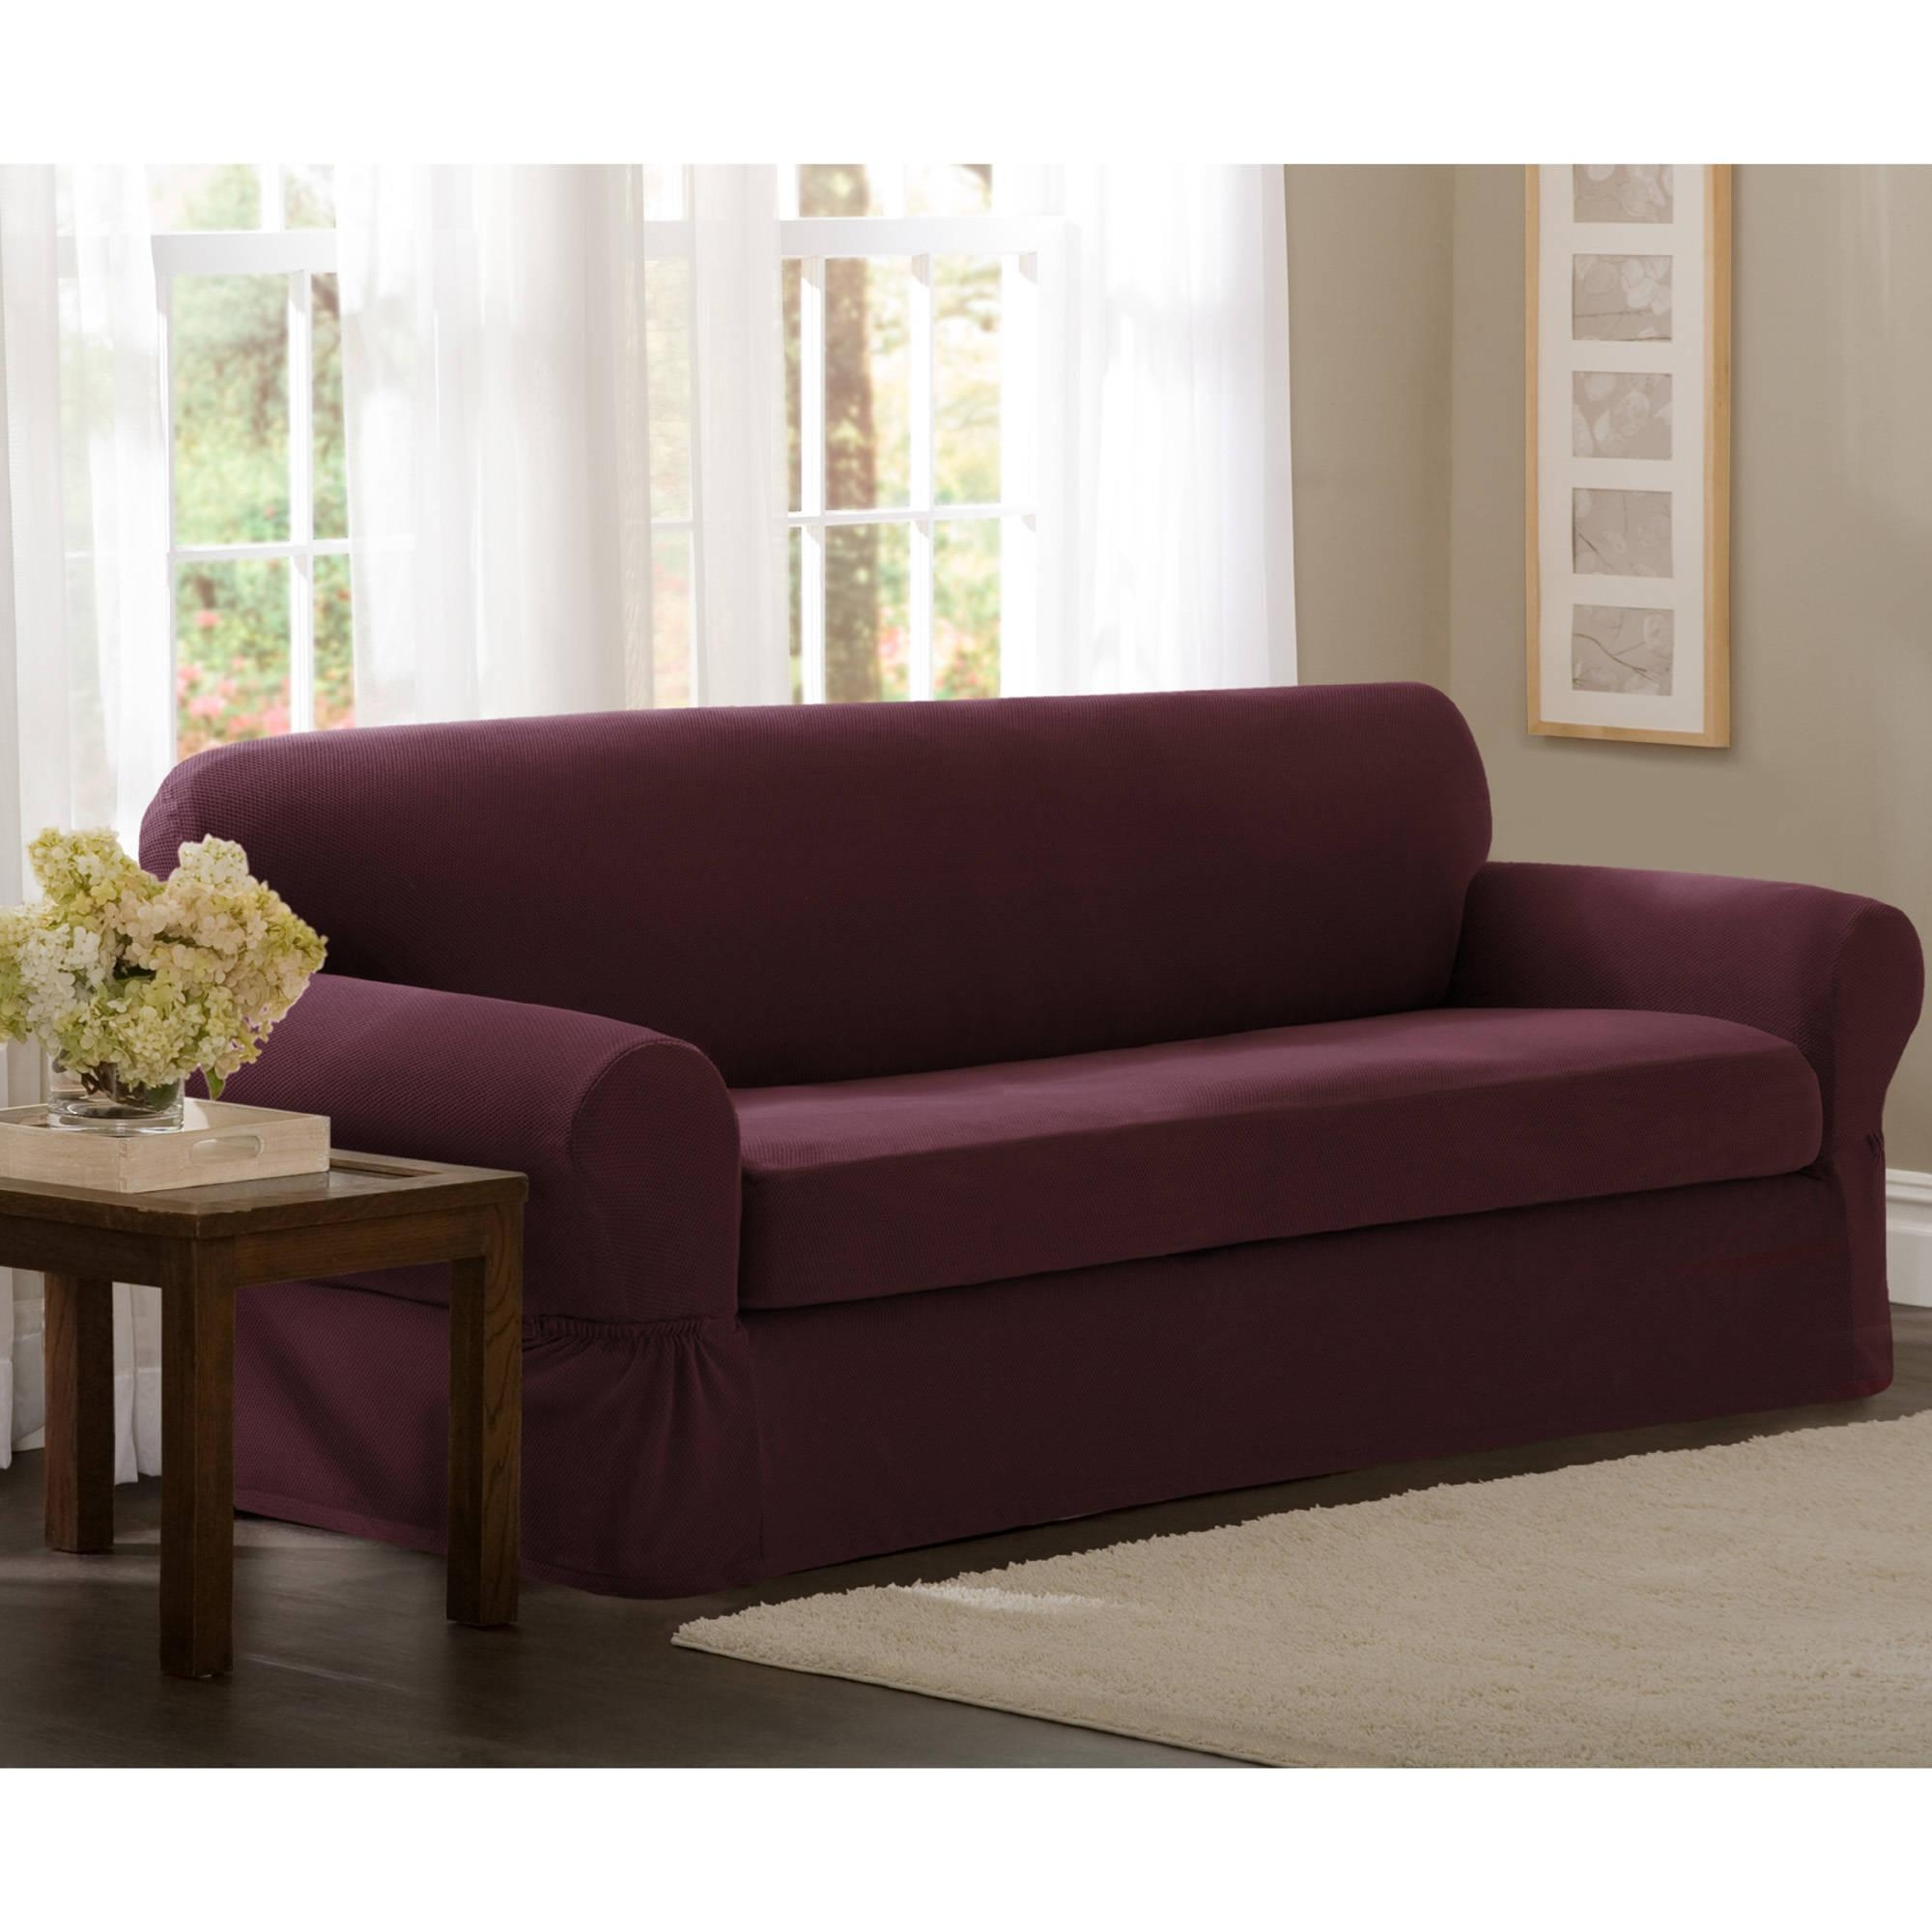 Maytex Stretch 2 Piece Sofa Slipcover U2013 Walmart Inside 3 Piece Sofa  Slipcovers (Image 16